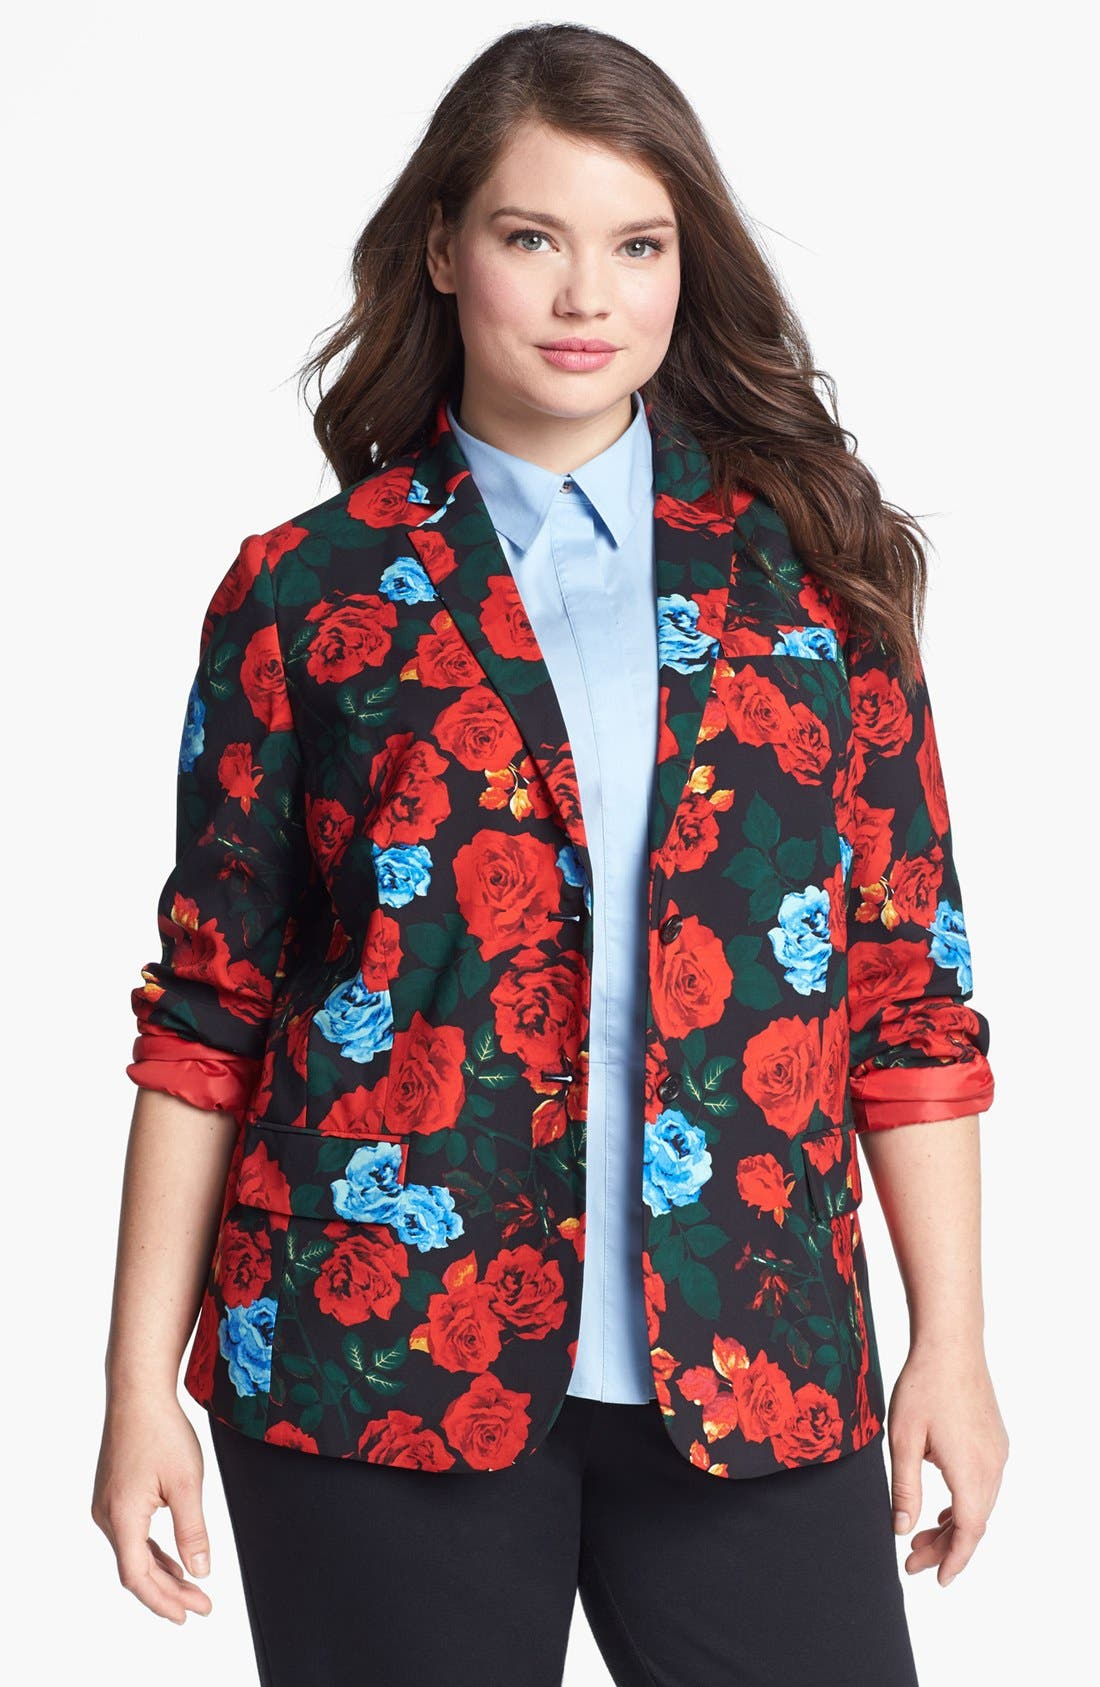 Alternate Image 1 Selected - Vince Camuto Rose Print Blazer (Plus Size)